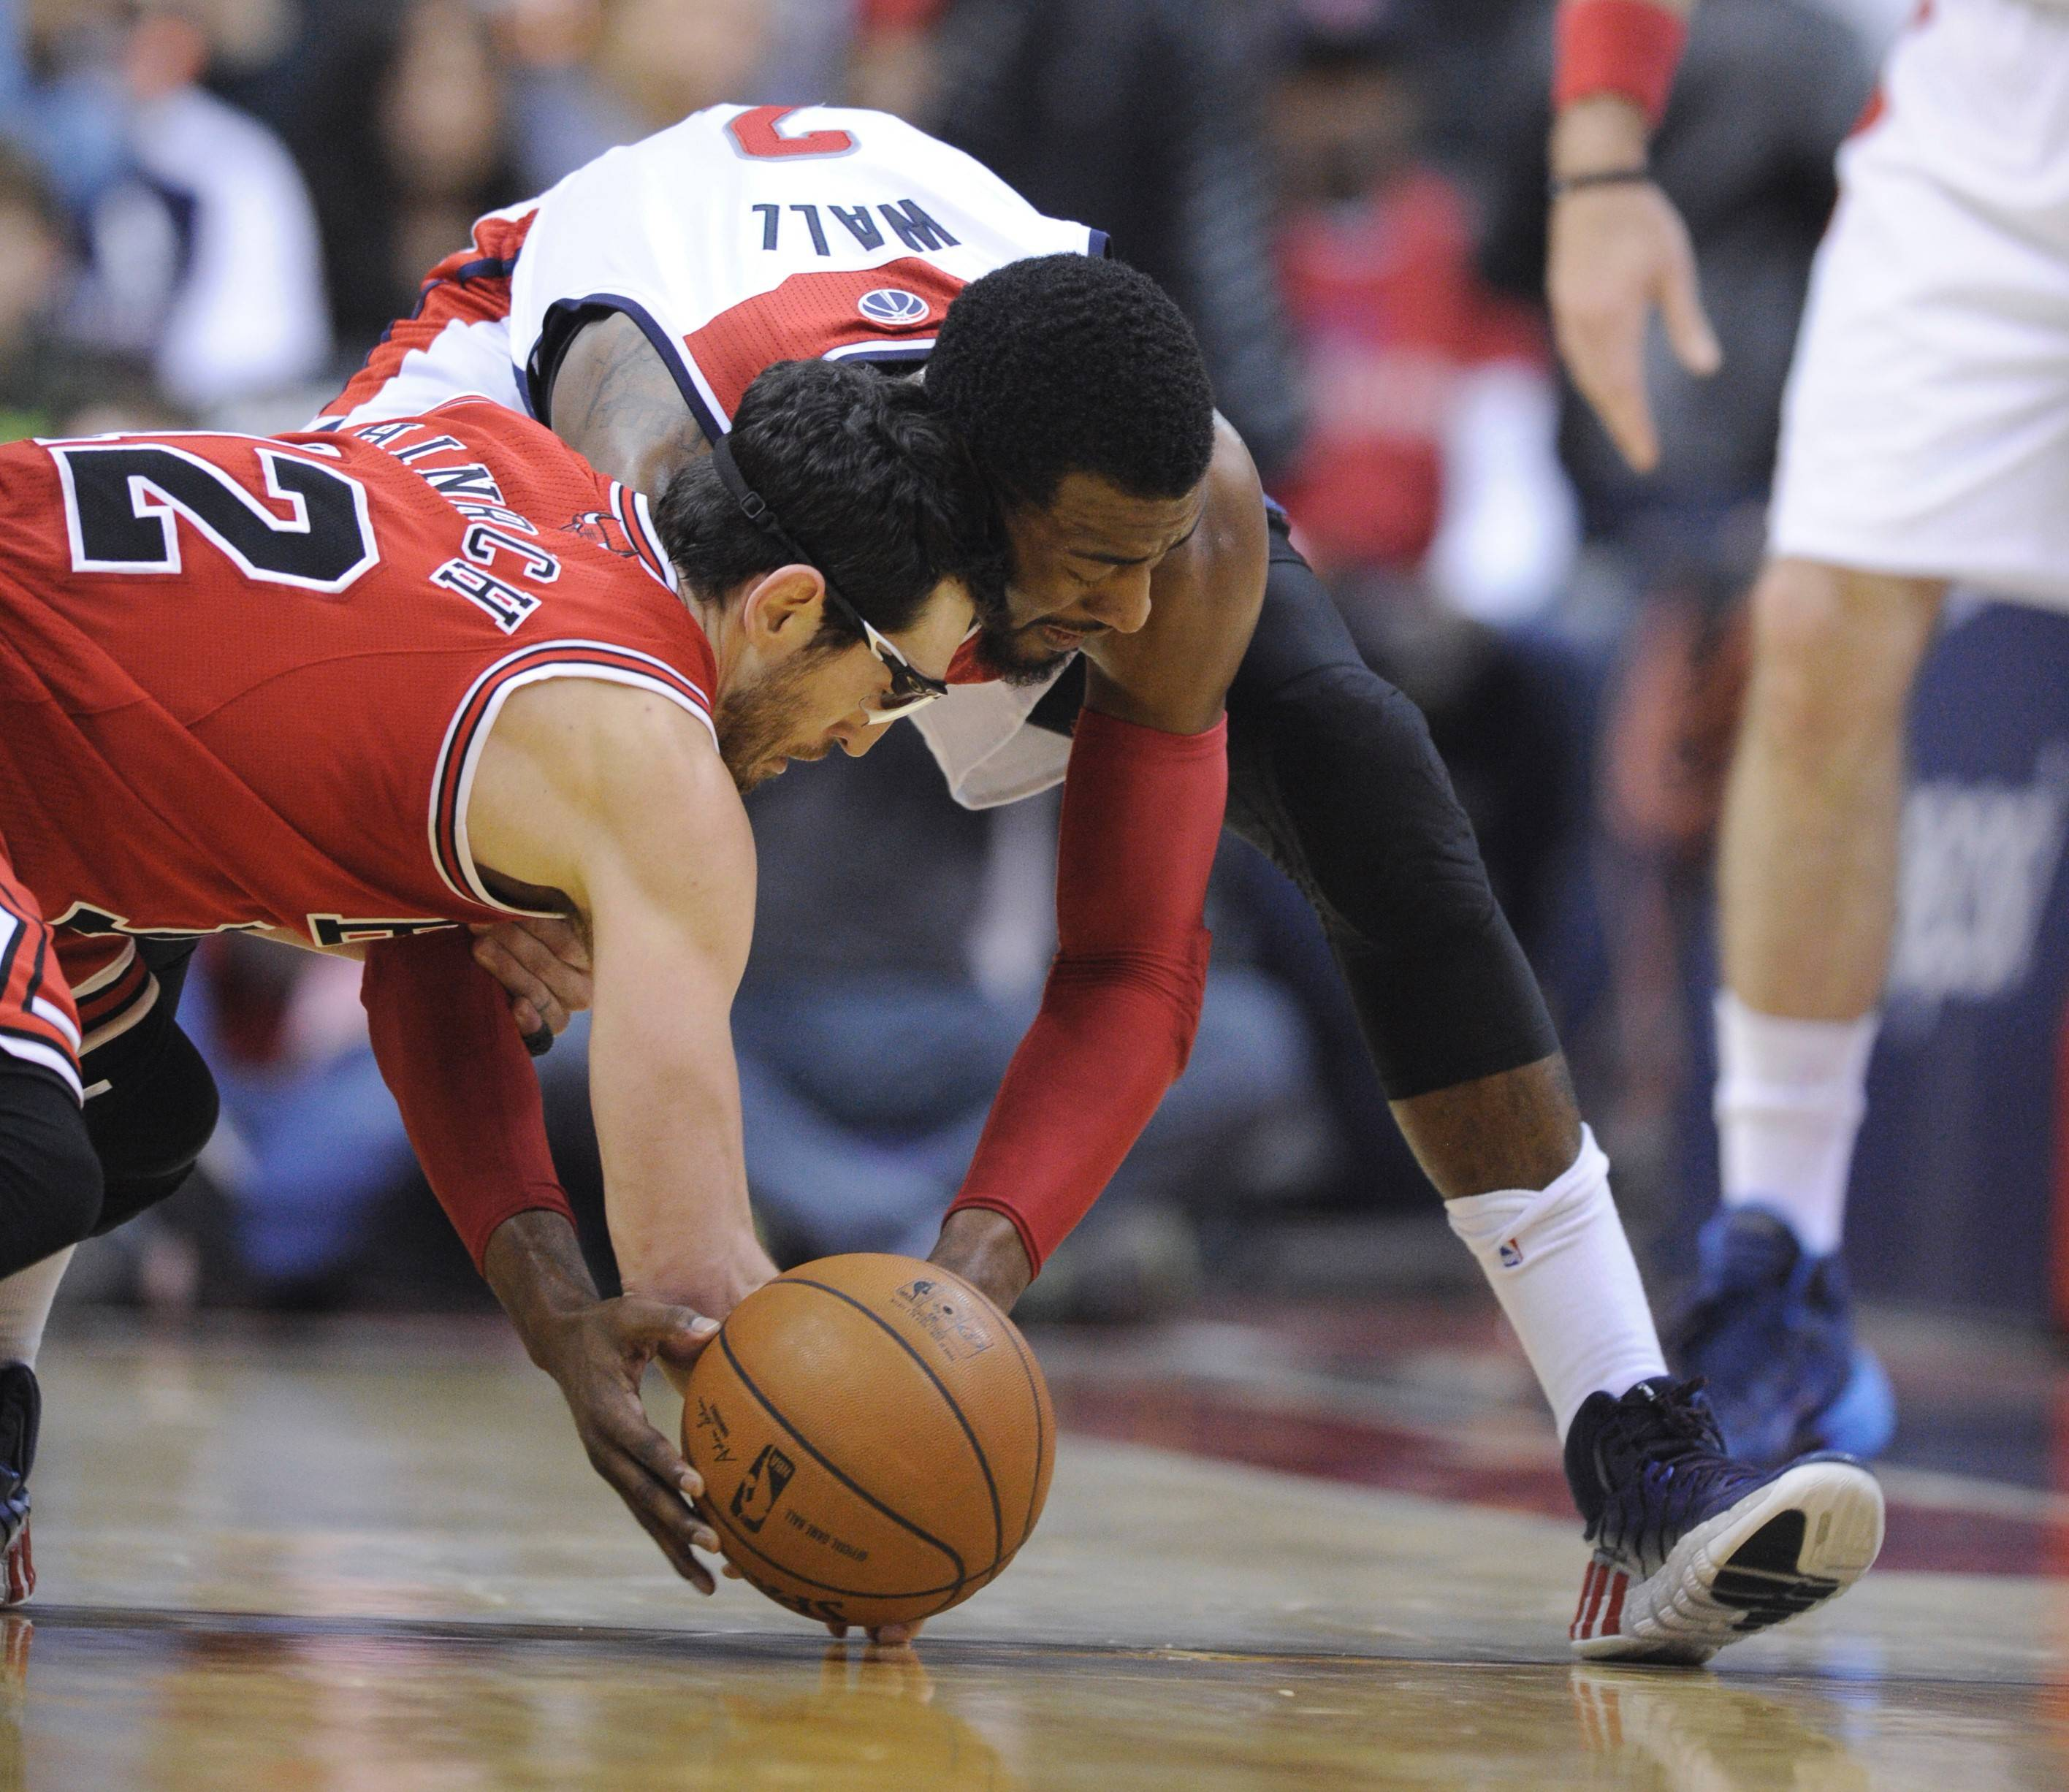 Washington Wizards guard John Wall, right, scrambles for the ball against Chicago Bulls guard Kirk Hinrich during the second half of an NBA basketball game, Saturday, April 5, 2014, in Washington. The Bulls won 96-78.